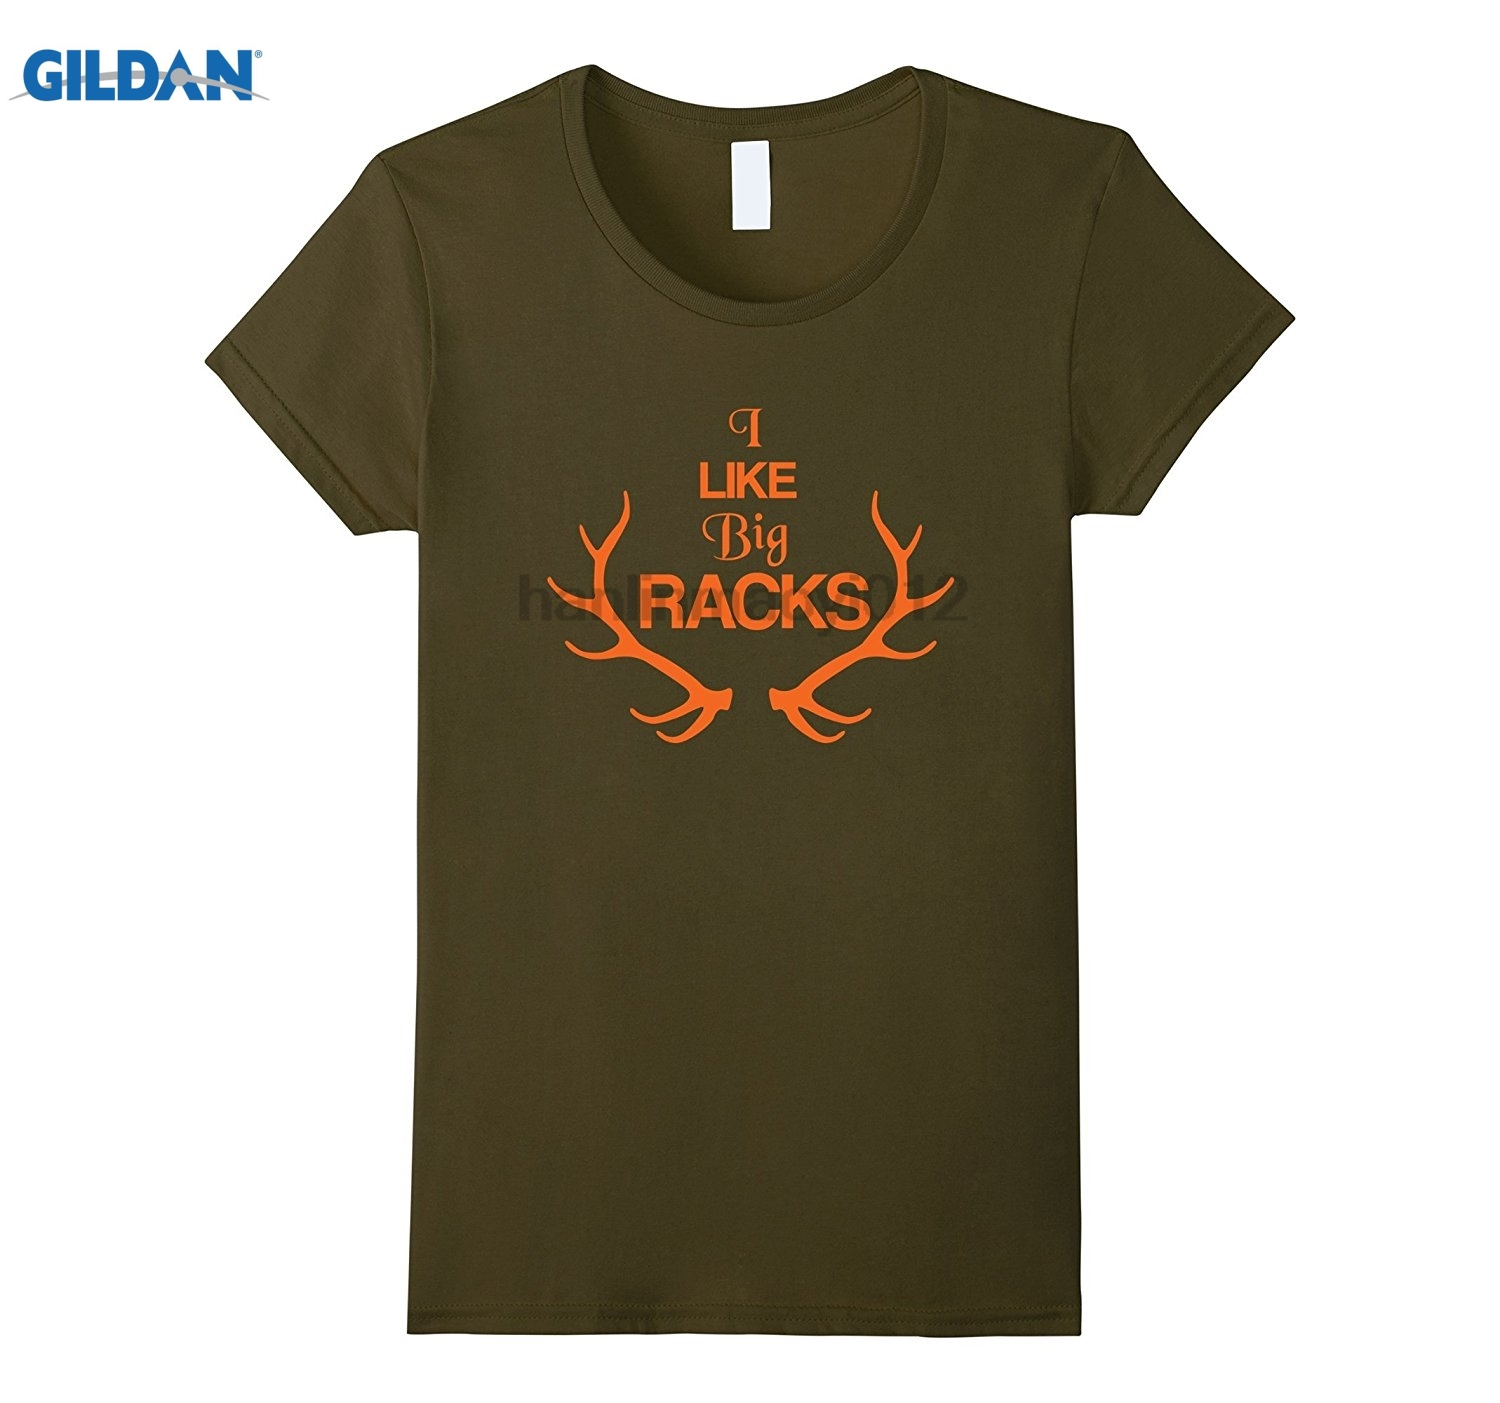 GILDAN Deer Hunter T-Shirt I Like Big Racks Blaze Orange Doe Womens T-shirt ...